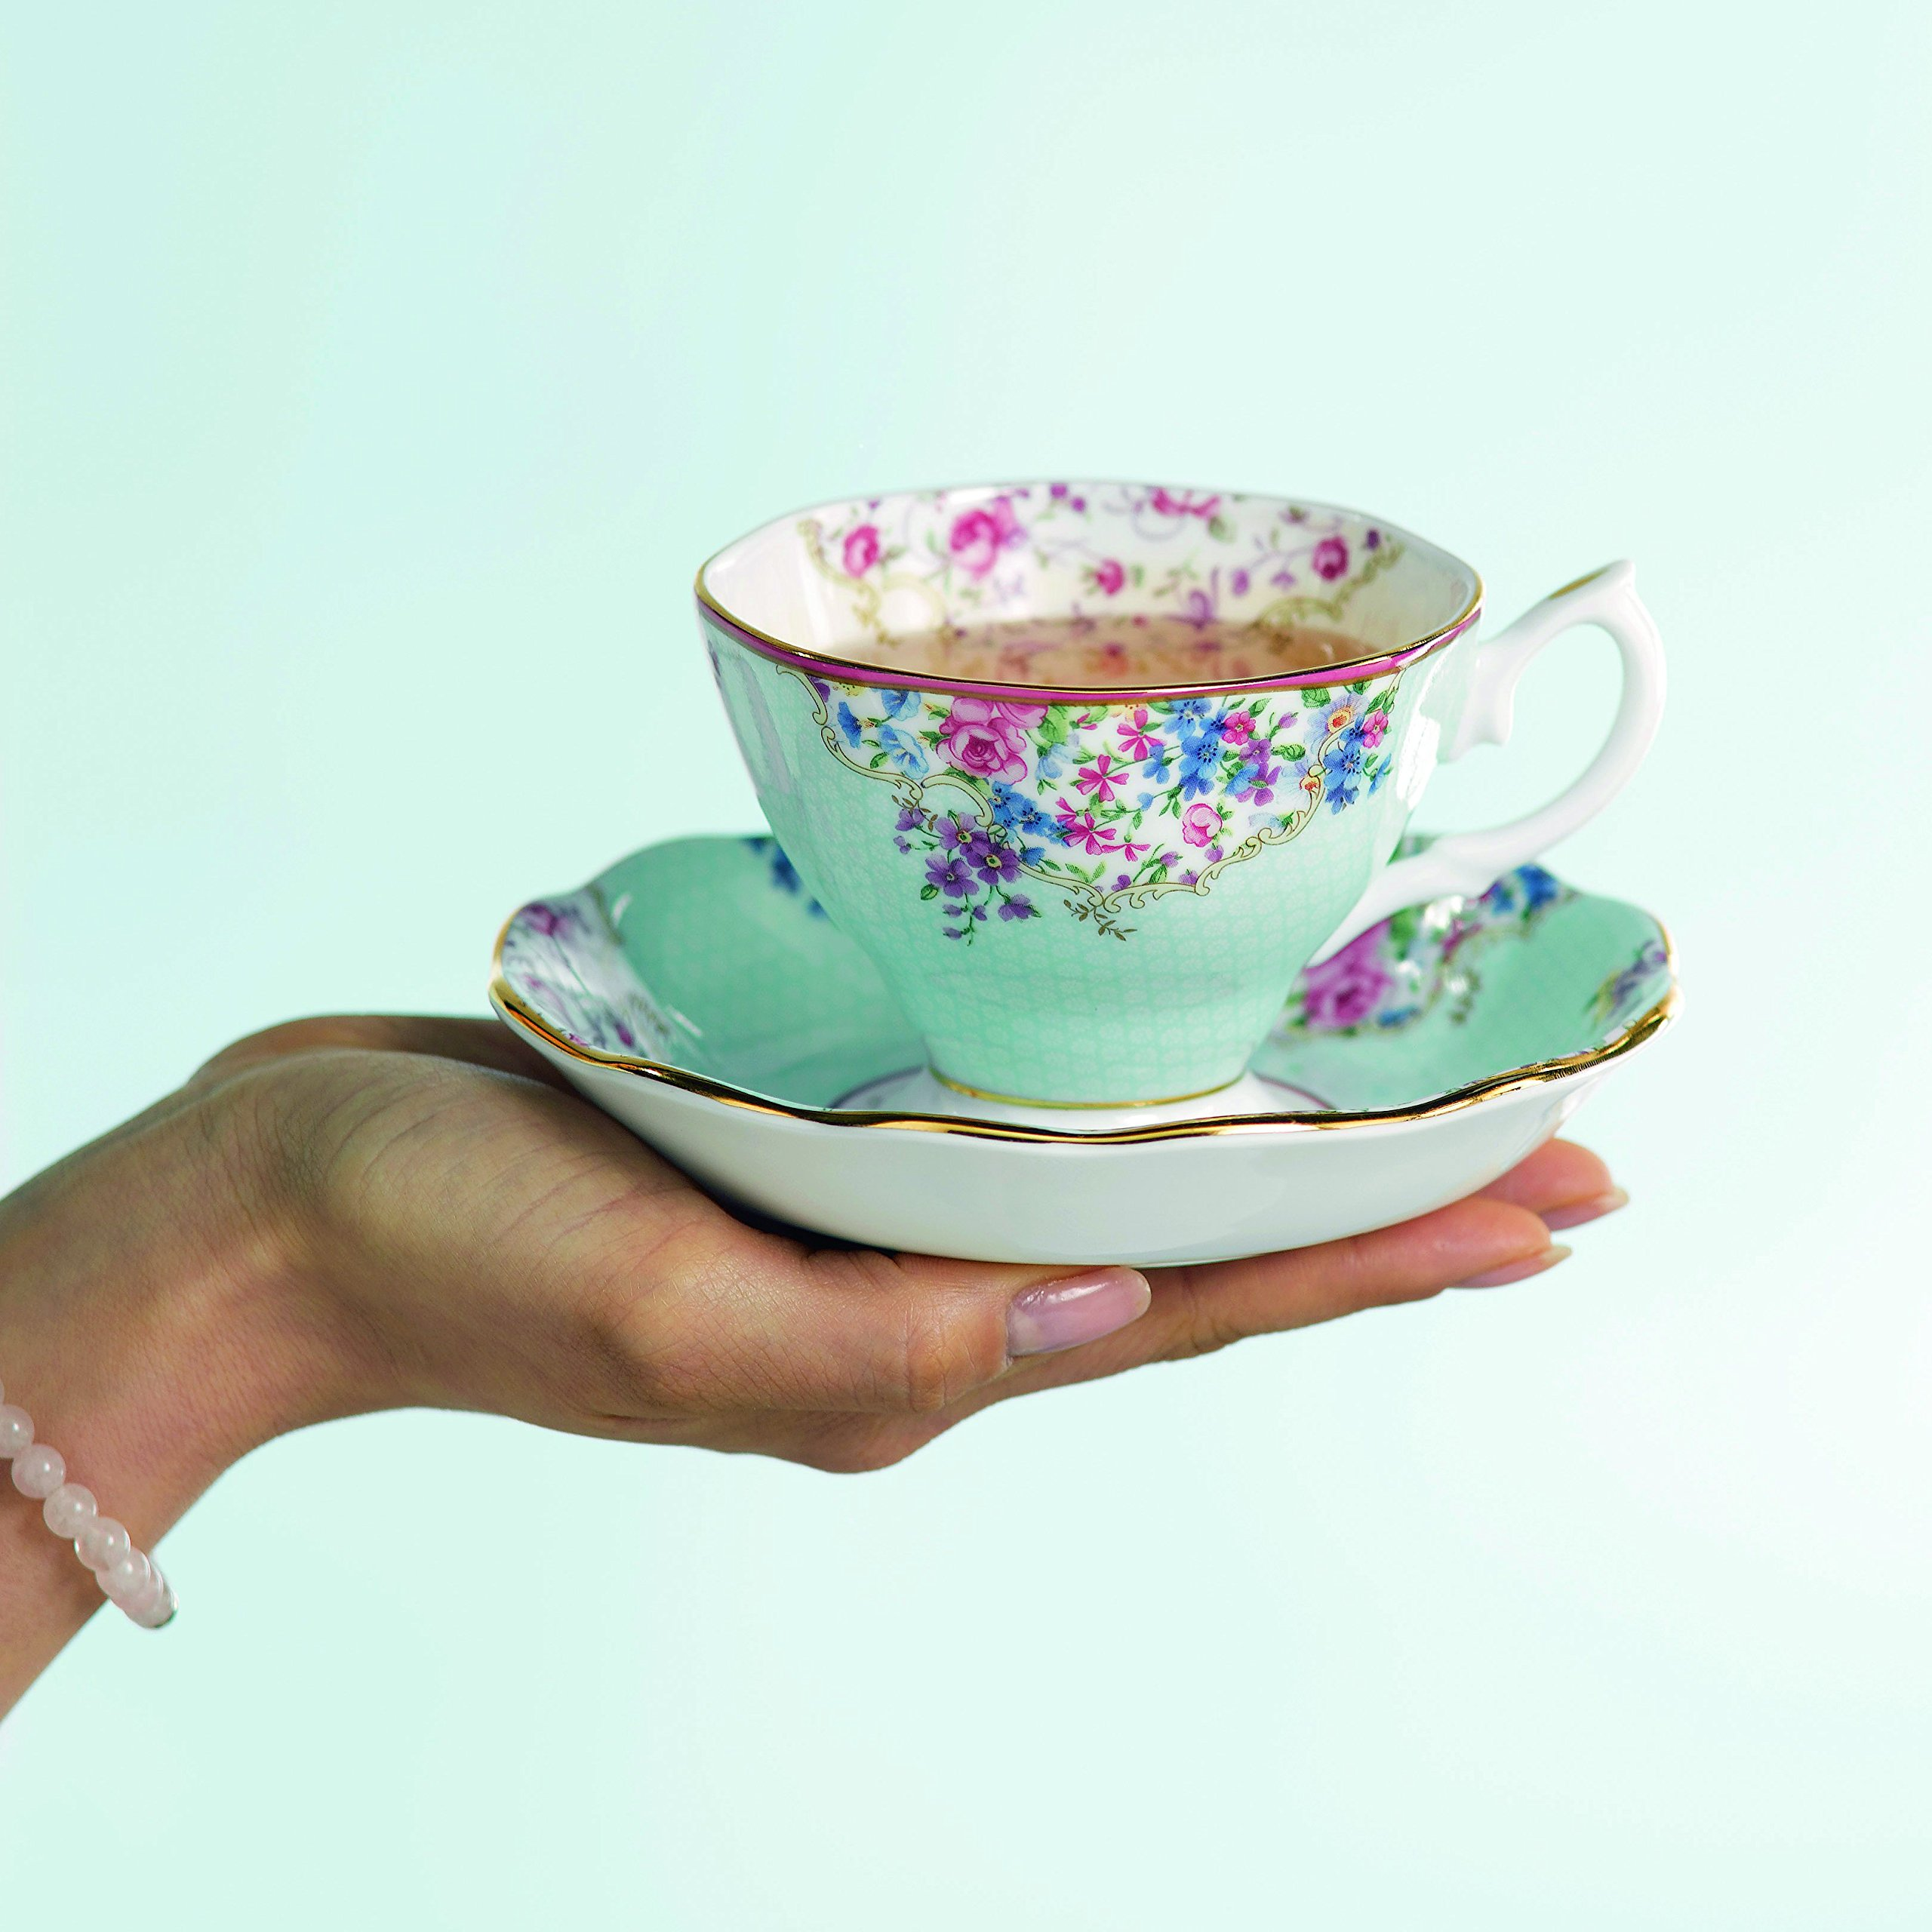 Royal Albert 40002539 Candy Teacup and Saucer Set Set of 4 Multicolor by Royal Albert (Image #4)